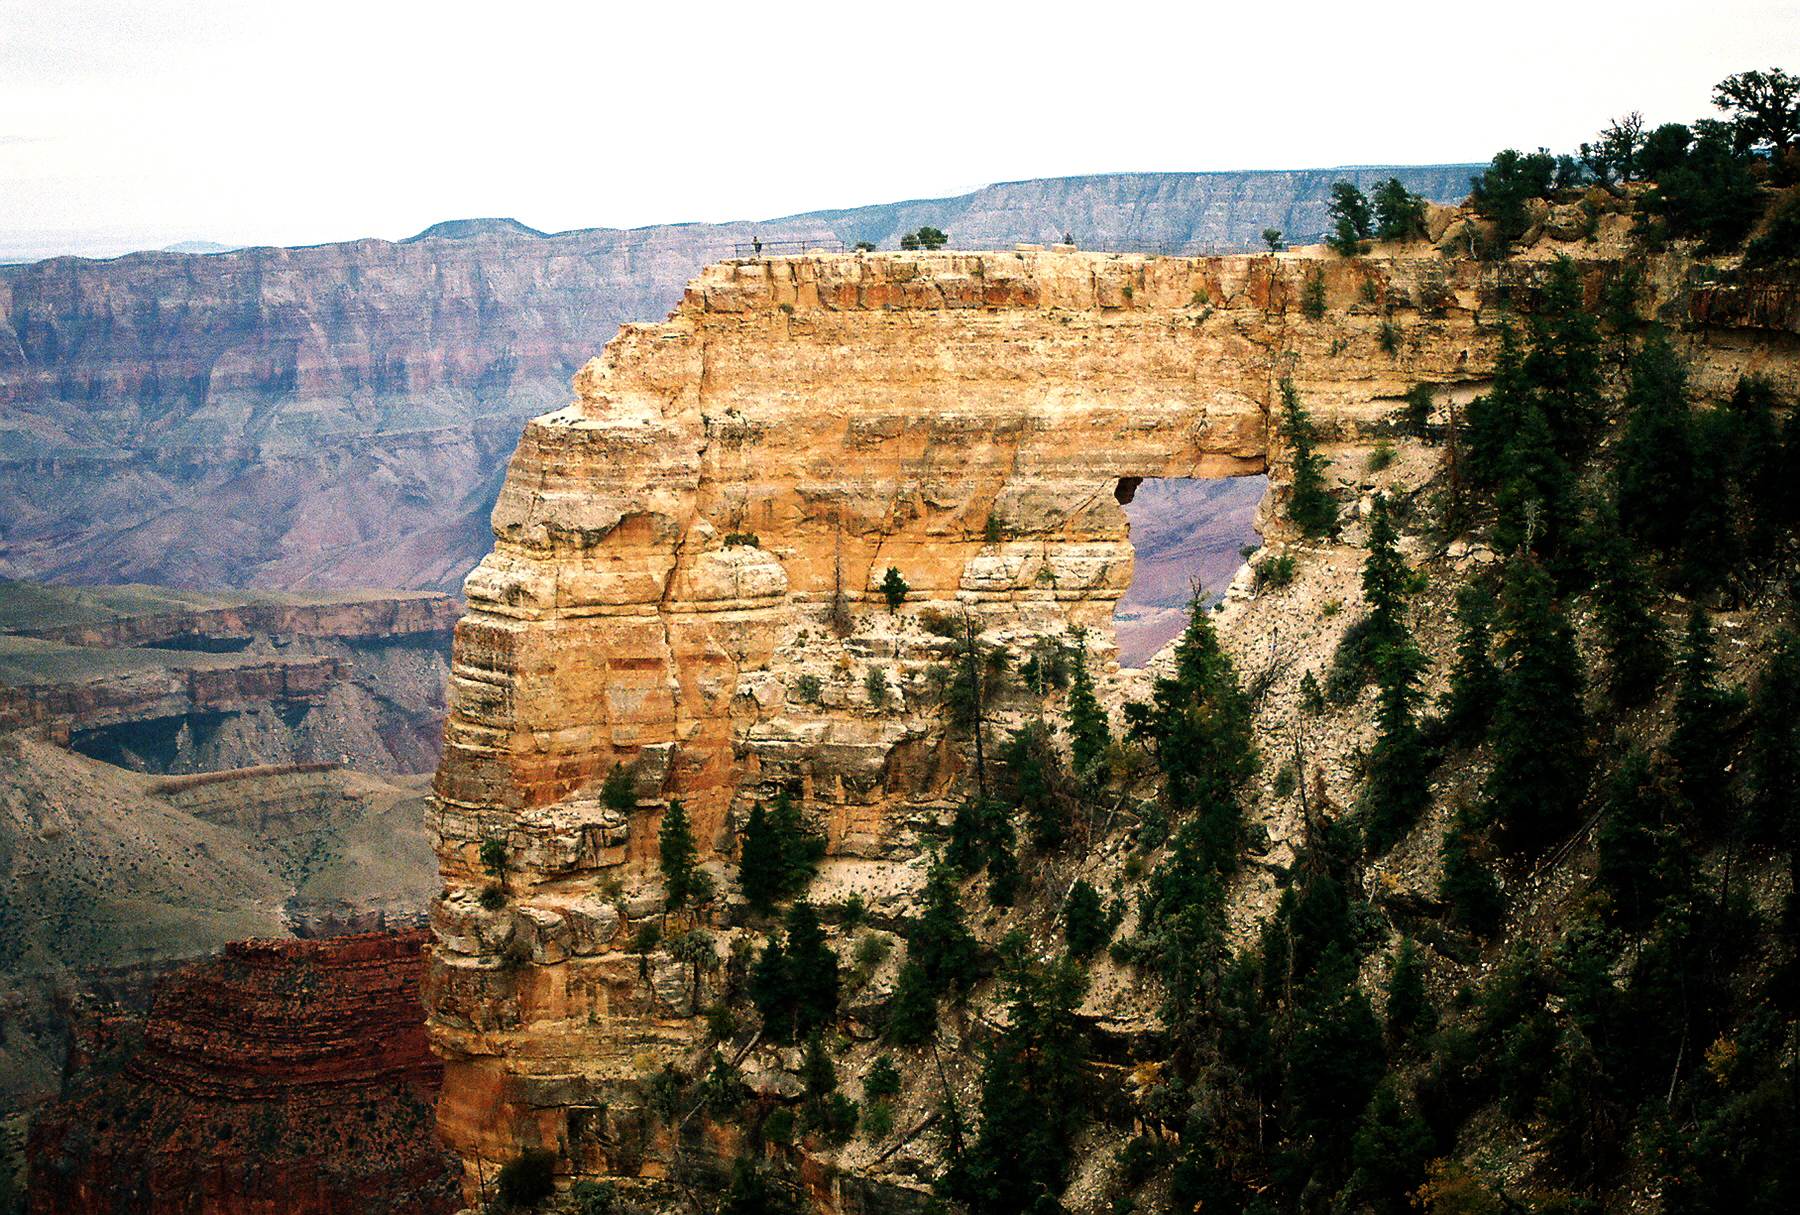 Grand Canyon To Implement Level 2 Water Restrictions On